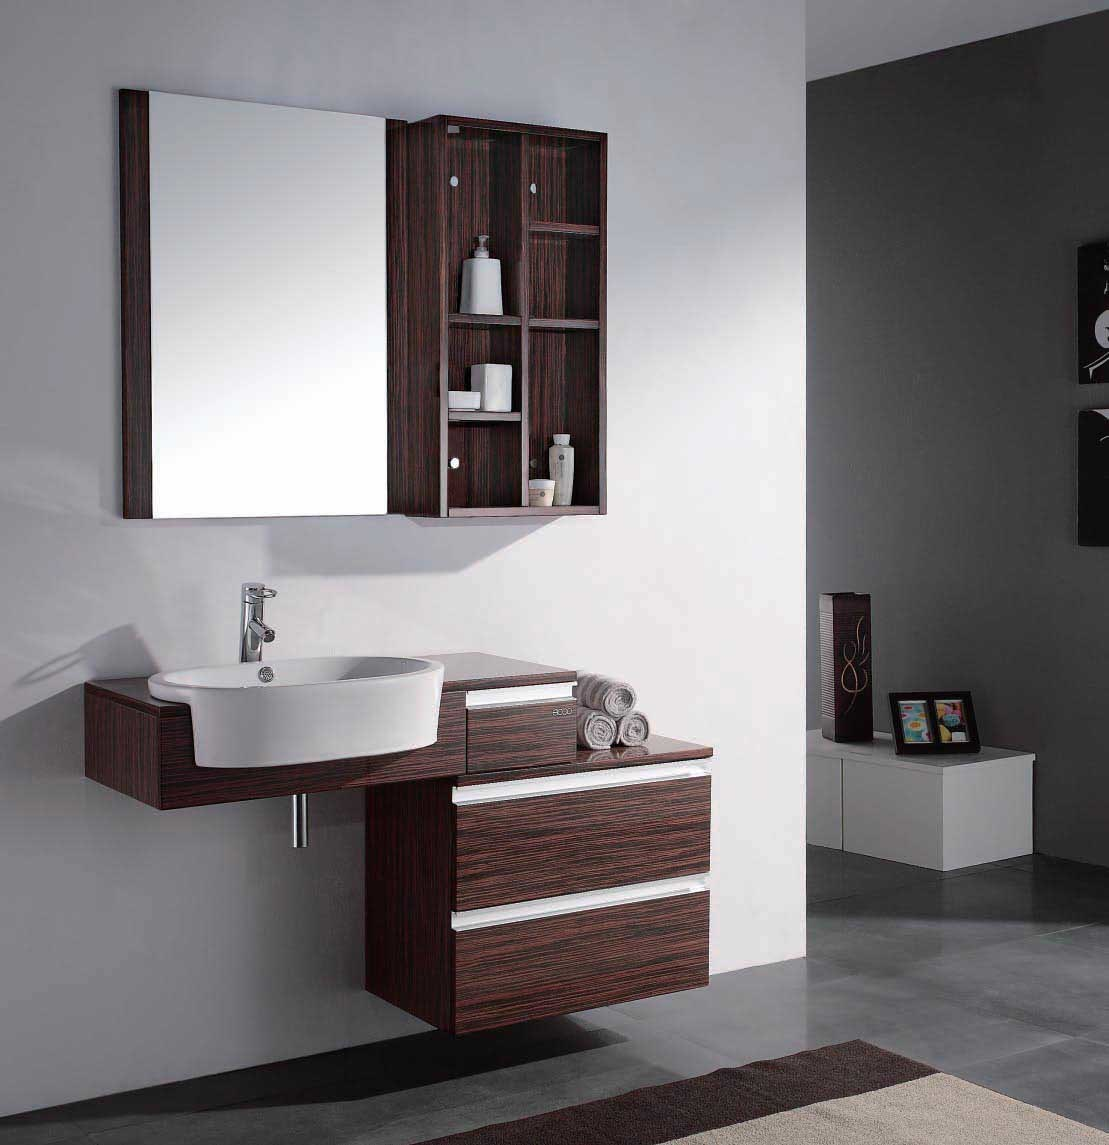 Solid oak bathroom cabinets etv9000 china bathroom for Bathroom ideas with oak cabinets